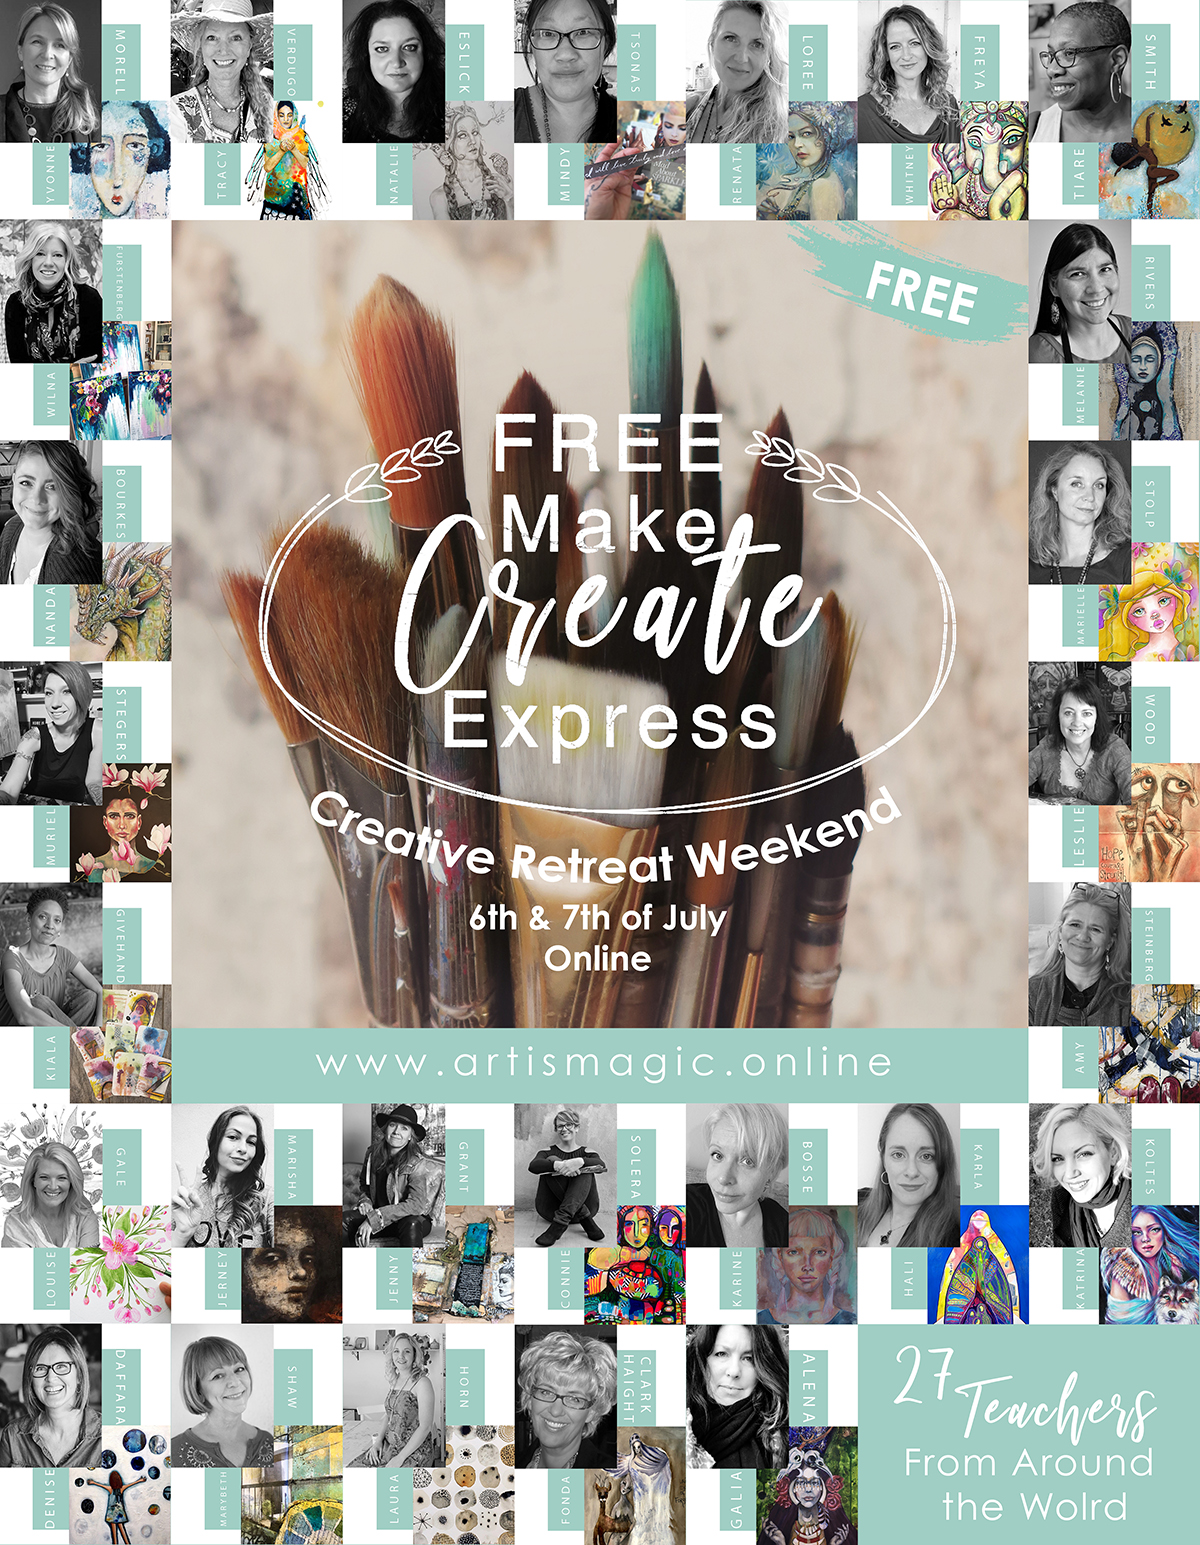 Join me and 26 other amazing teachers from around the world for a FREE weekend of amazing online workshops.